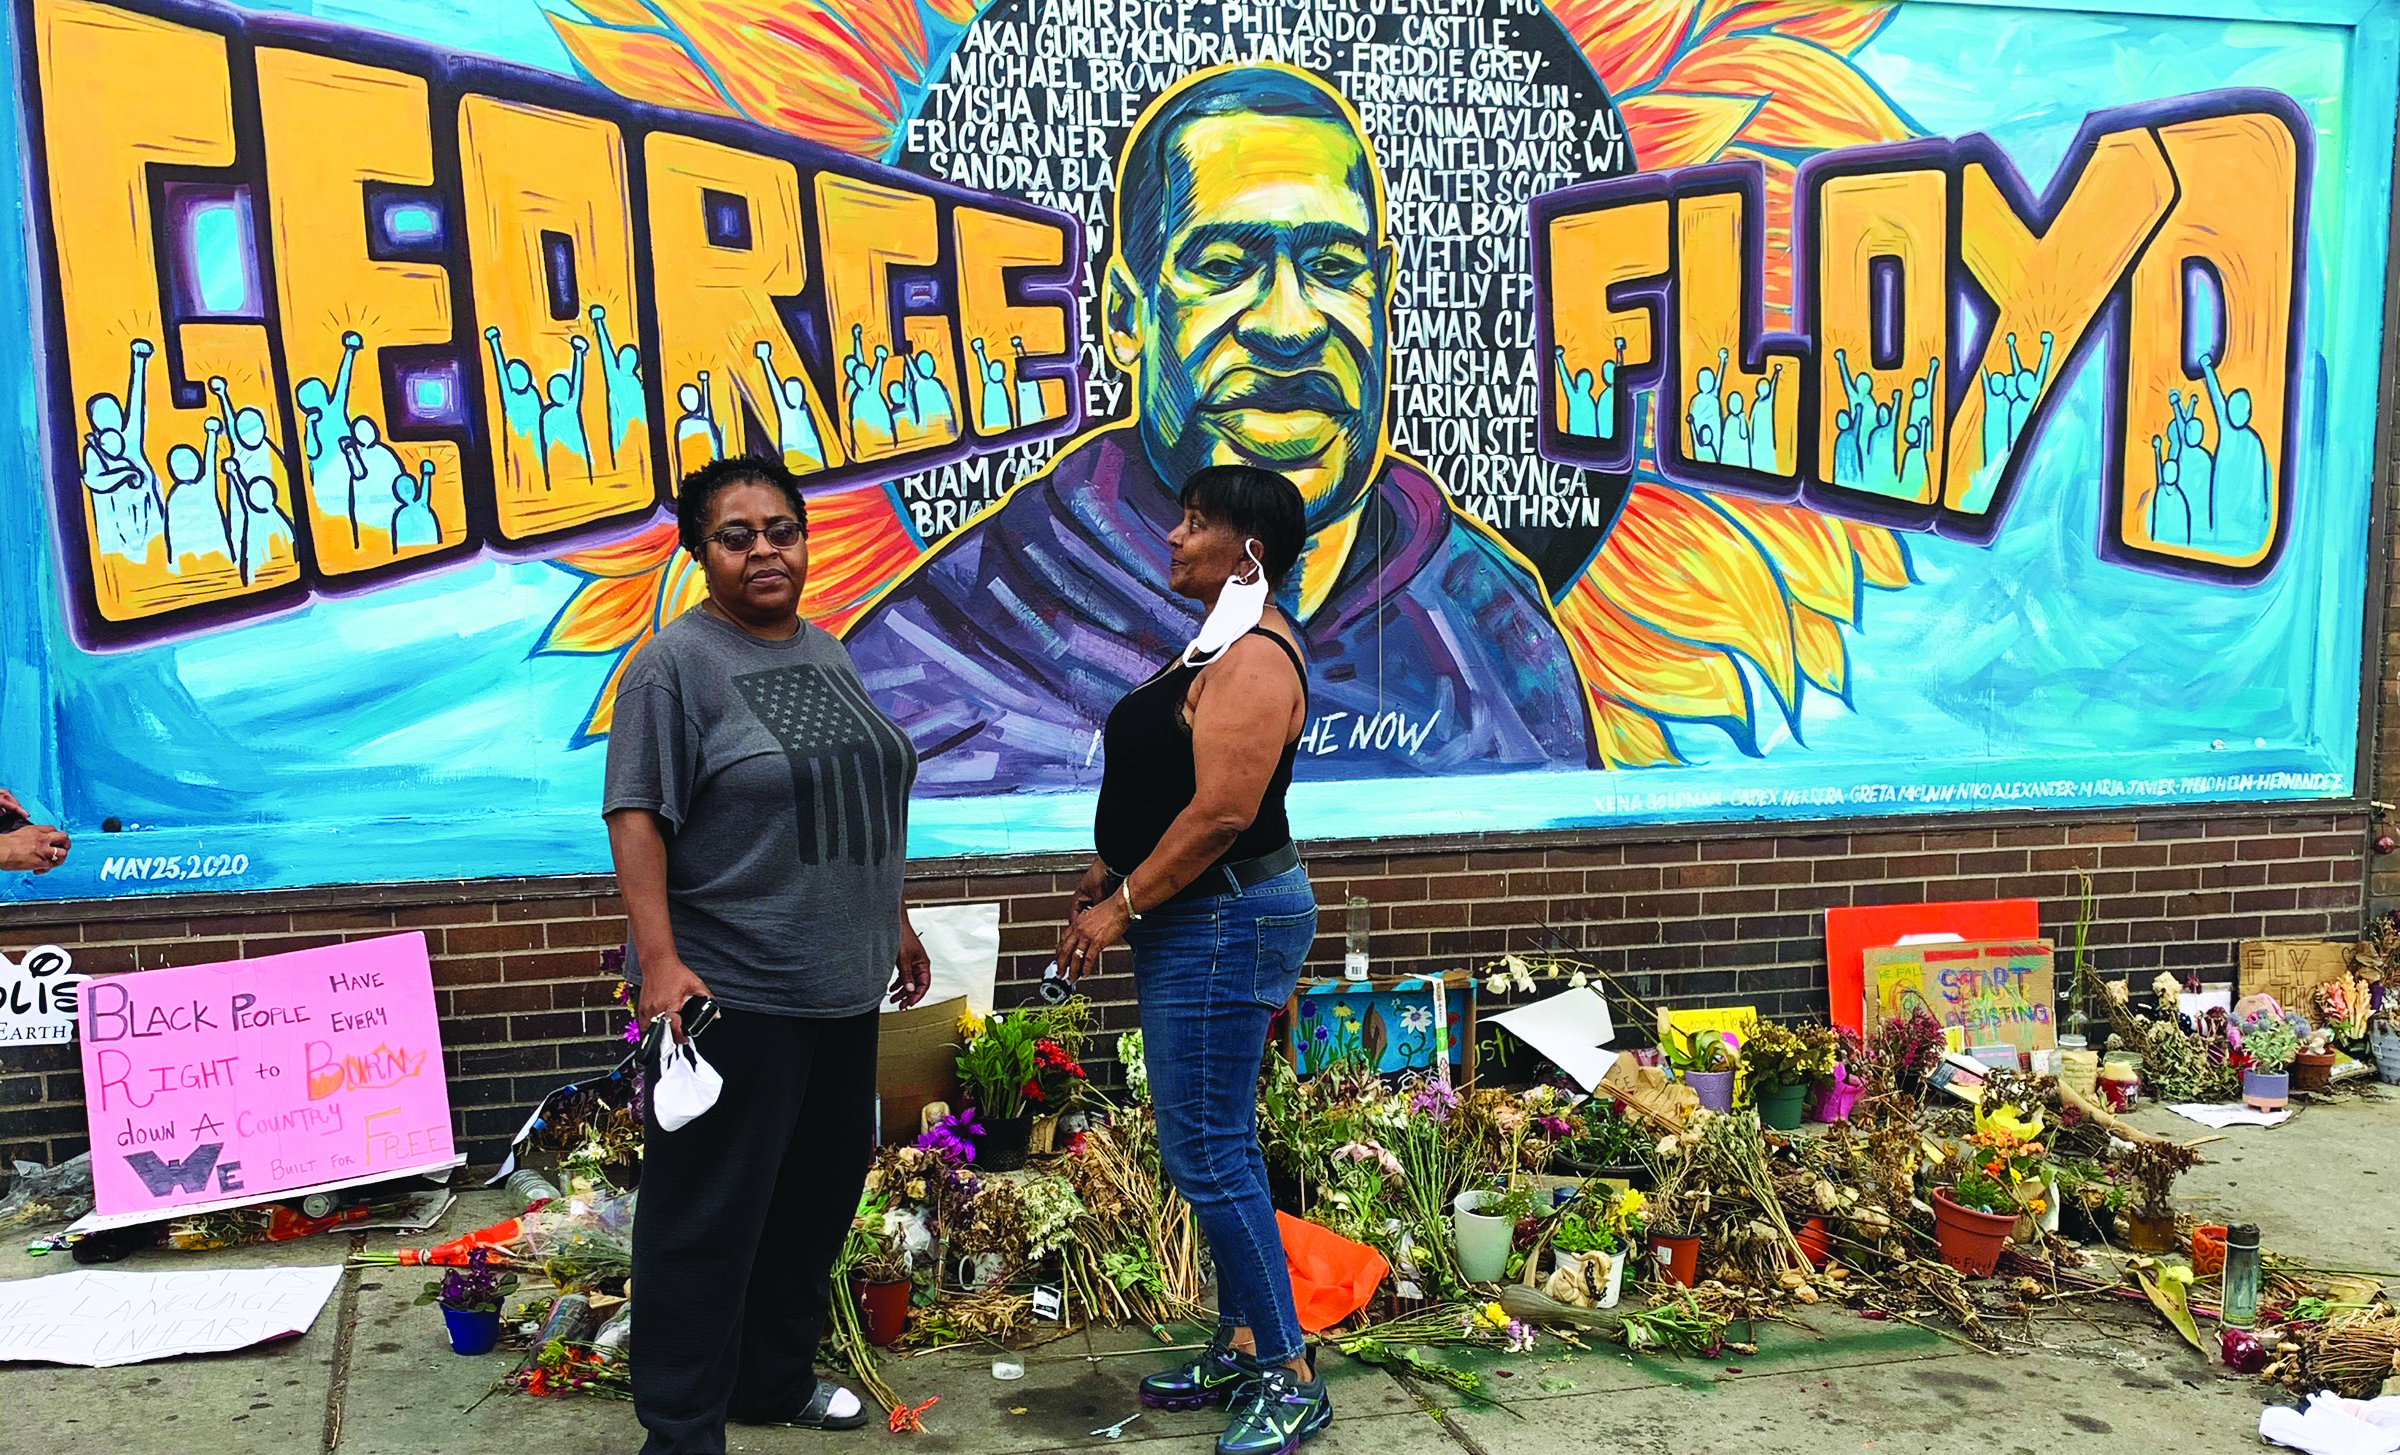 Demetria McFarland, left, and her sister drove through the night to visit a memorial for George Floyd in Minneapolis.